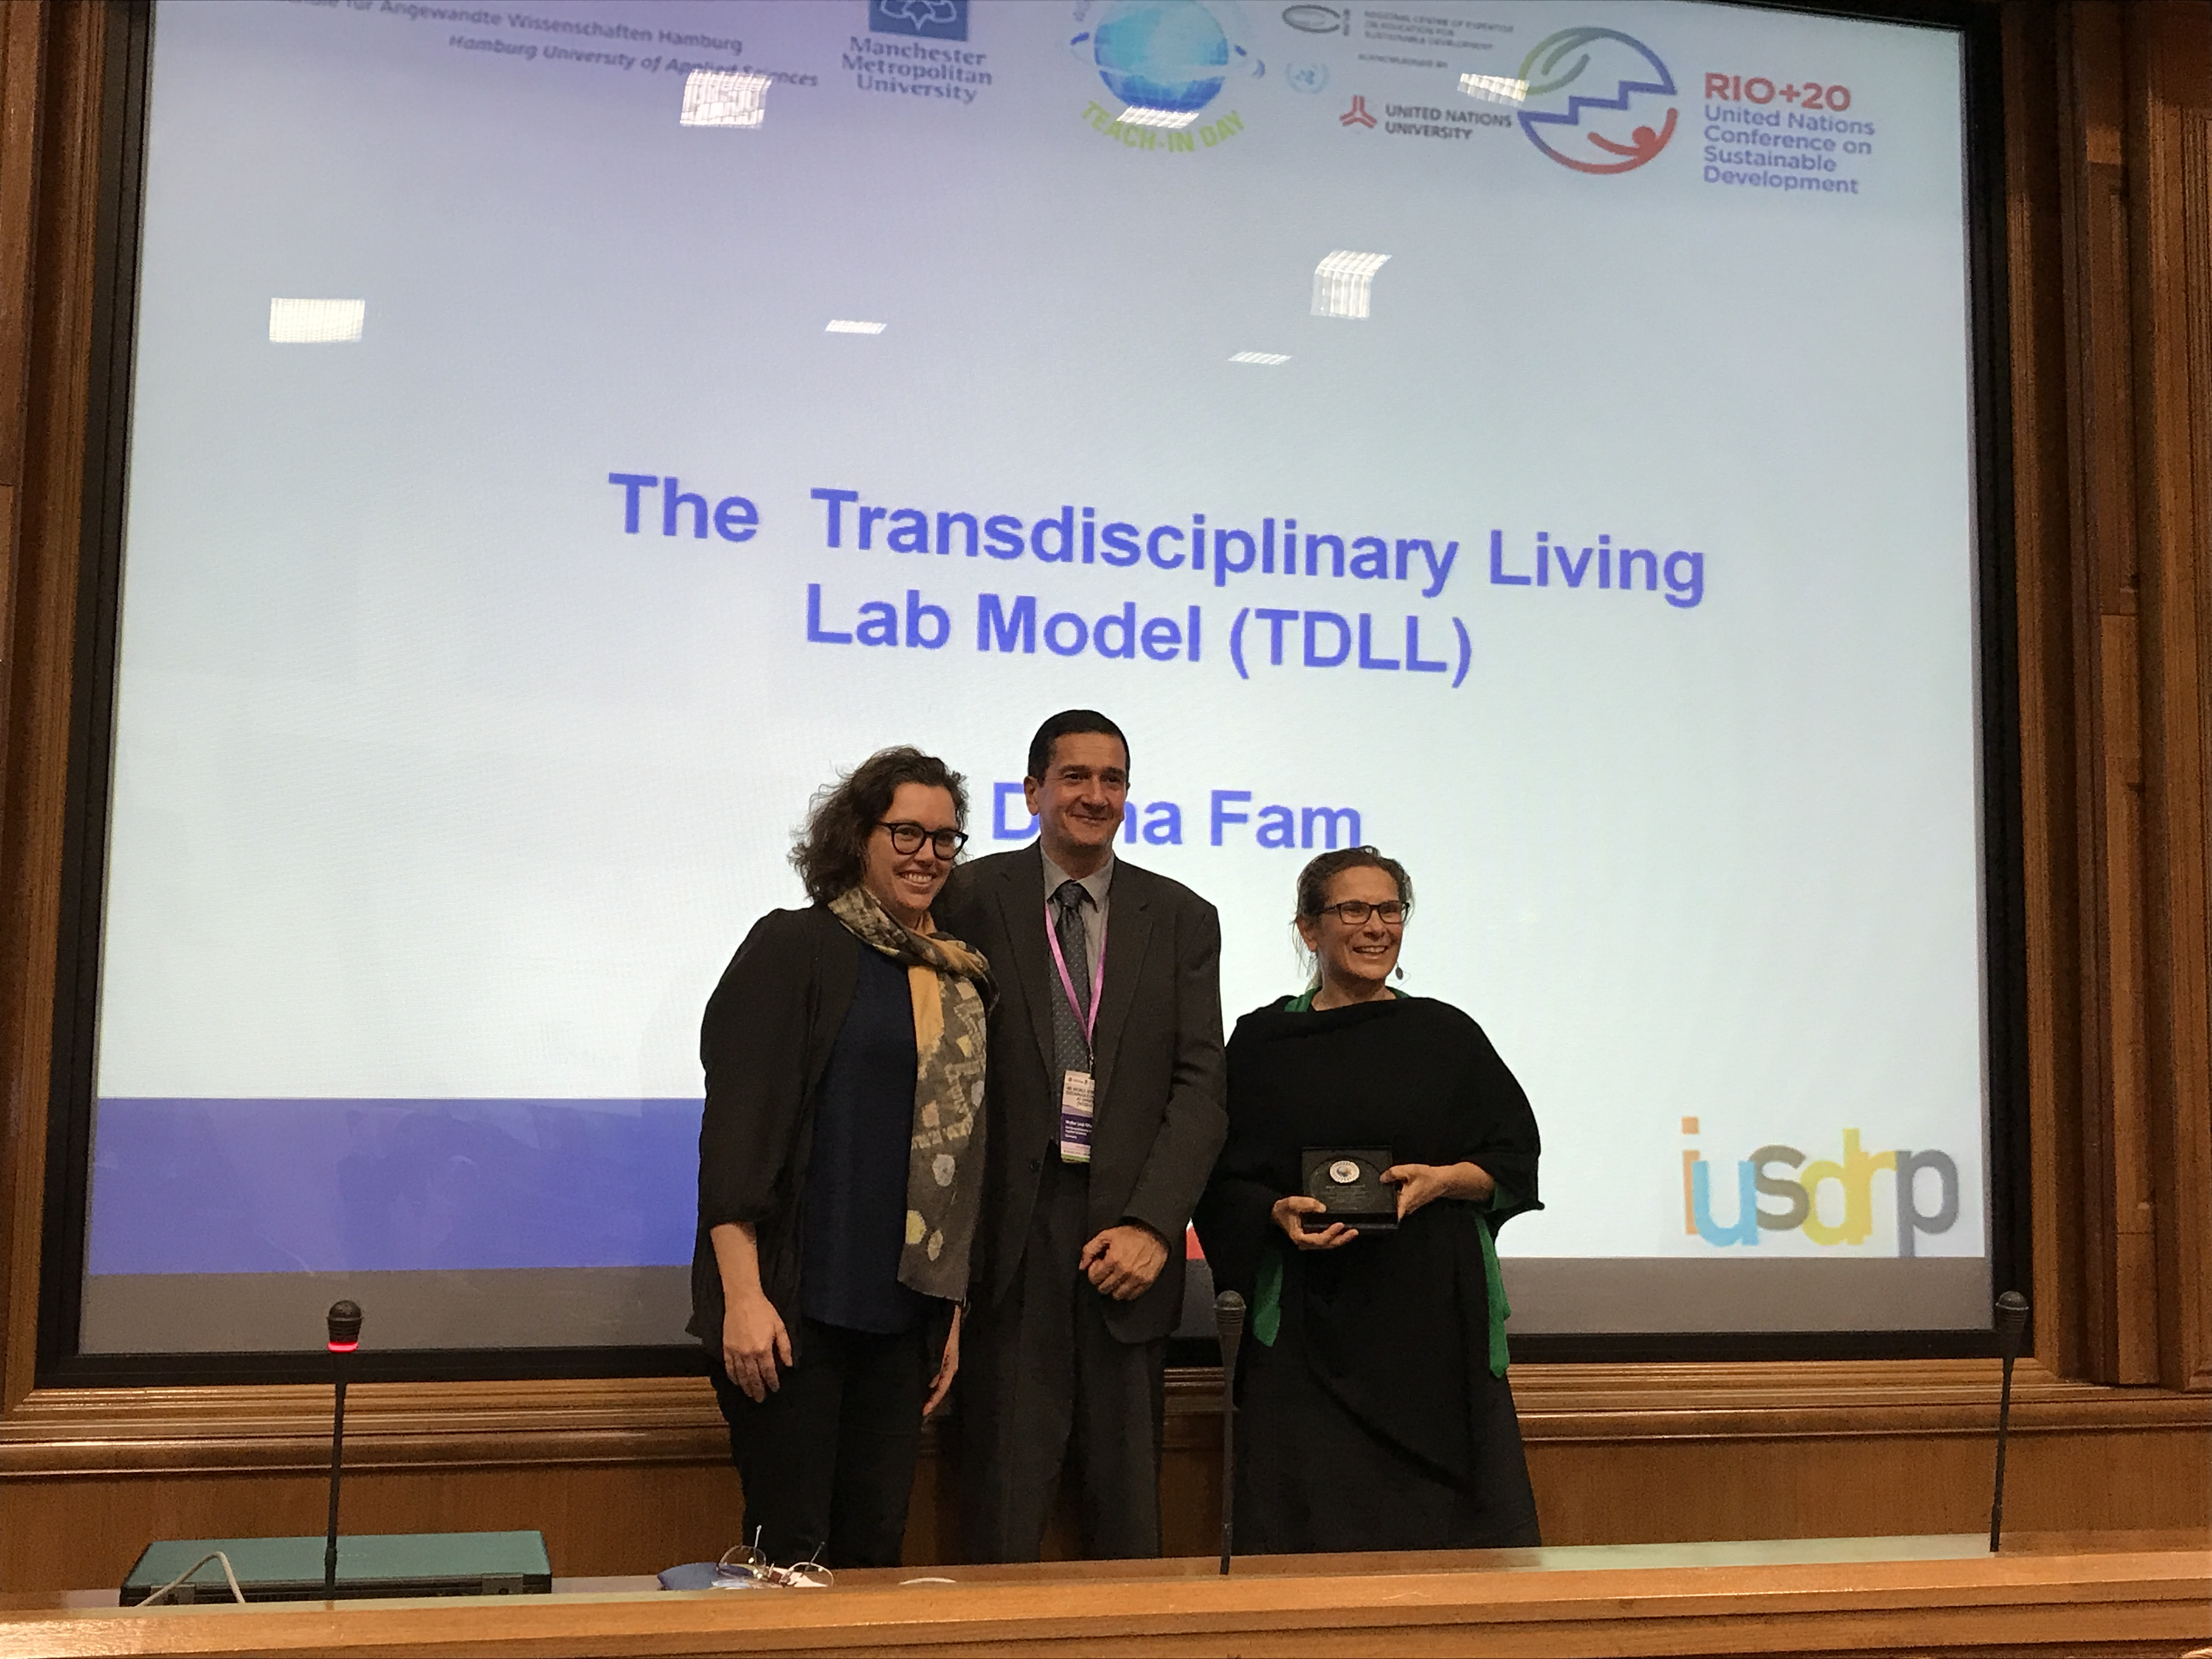 Award-winning collaboration the Transdisciplinary Living Lab model teaches students about sustainability